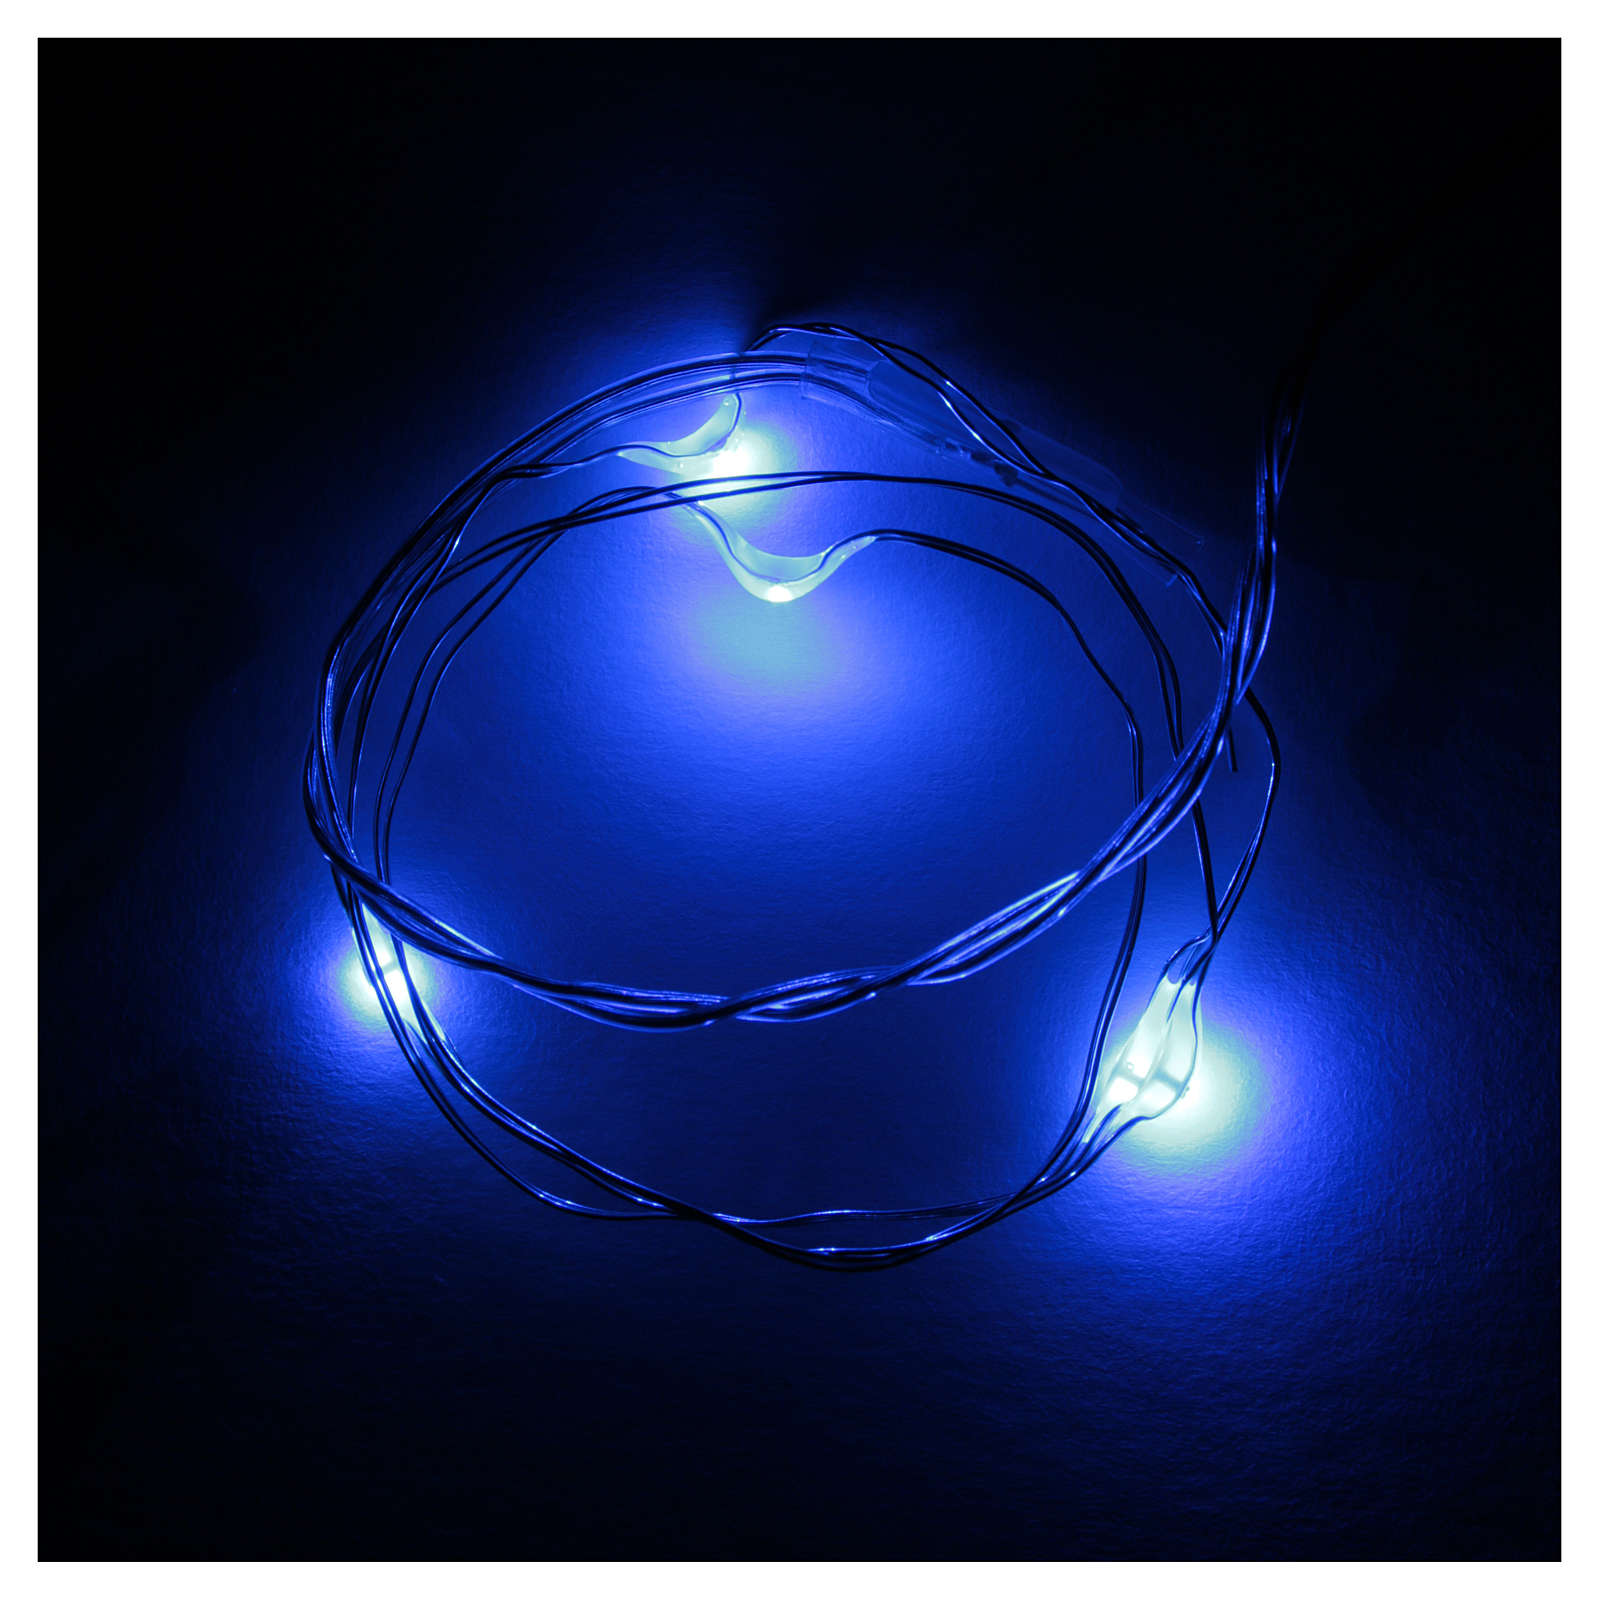 Led Christmas Lights 5 Drop Shaped Blue And Battery Powered